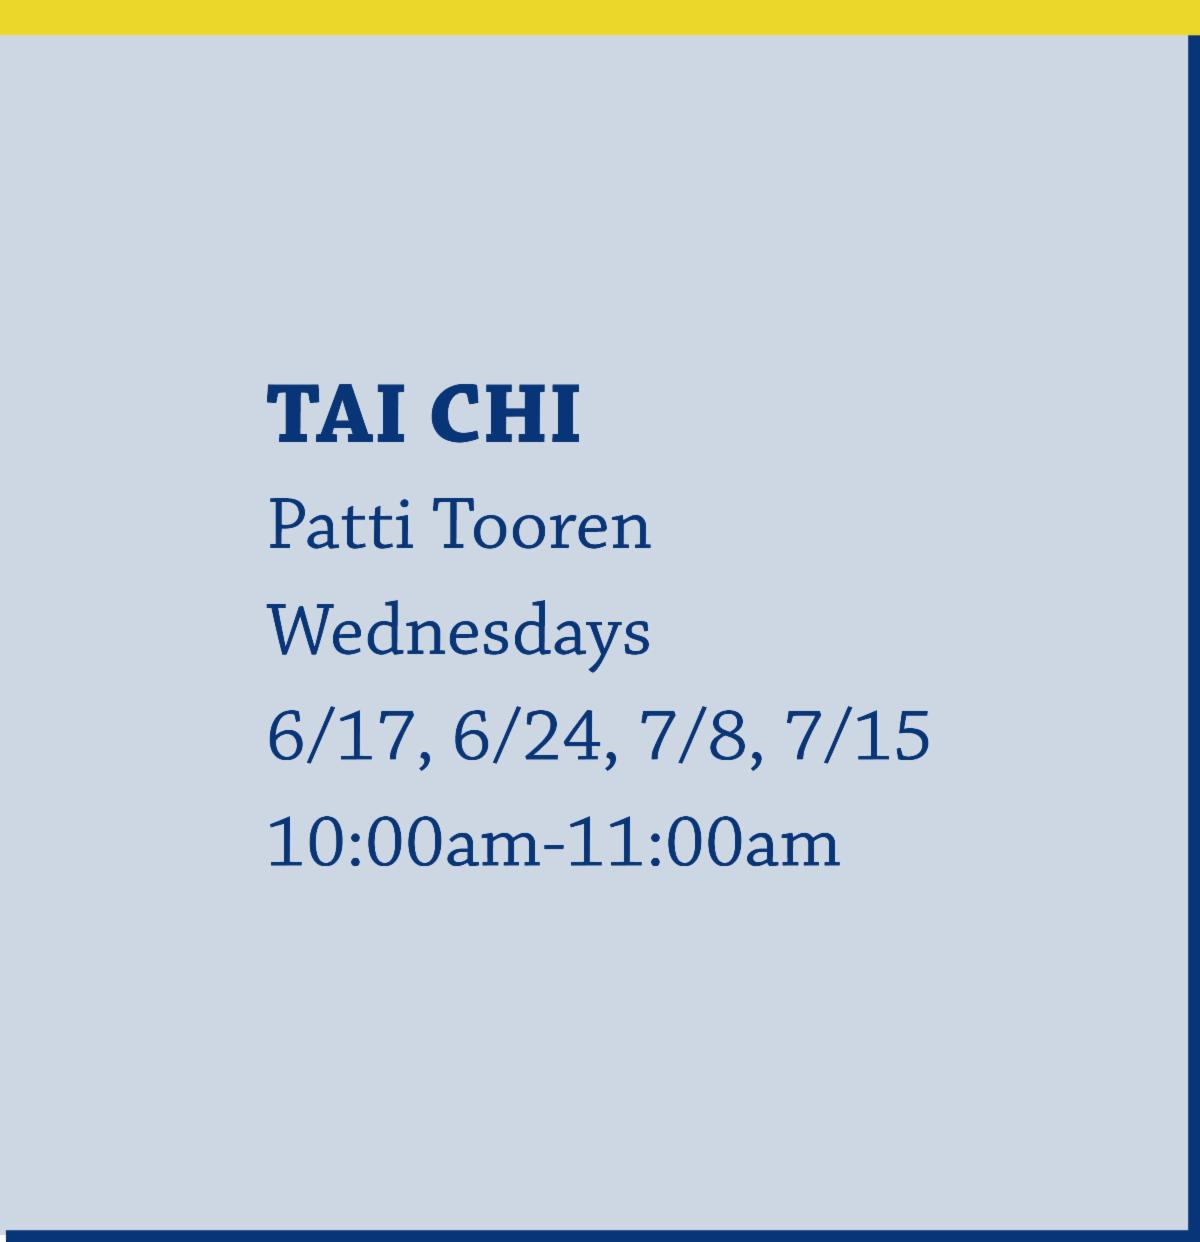 Tai Chi with Patti Tooren on Wednesdays from 10:00am-11:00am